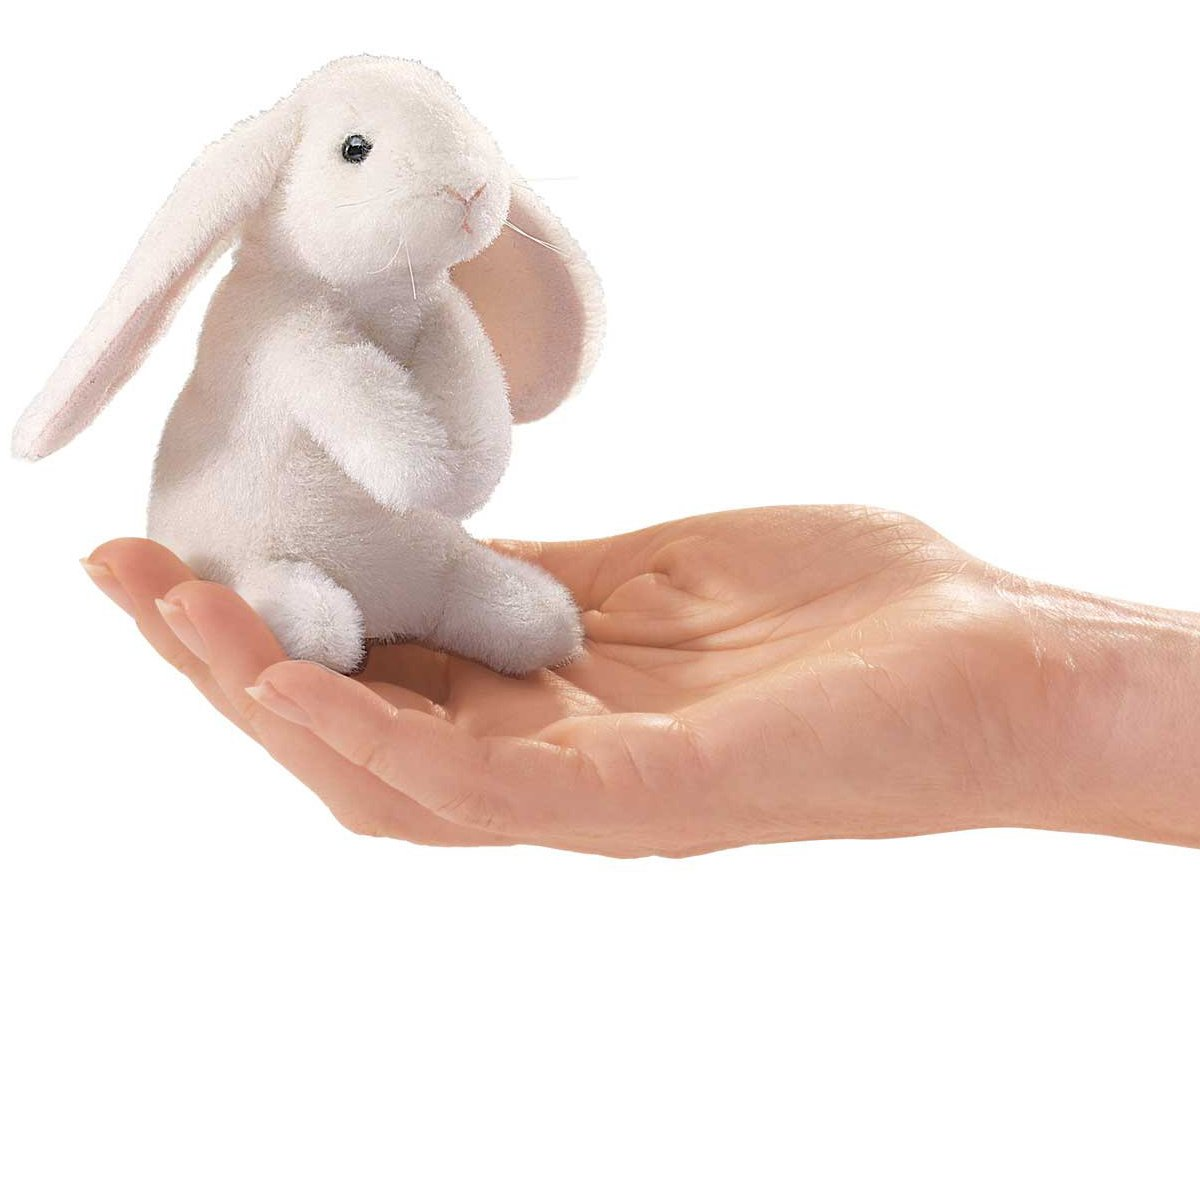 Folkmanis Mini Lop Earred Rabbit Finger Puppet Folkmanis Puppets 2745